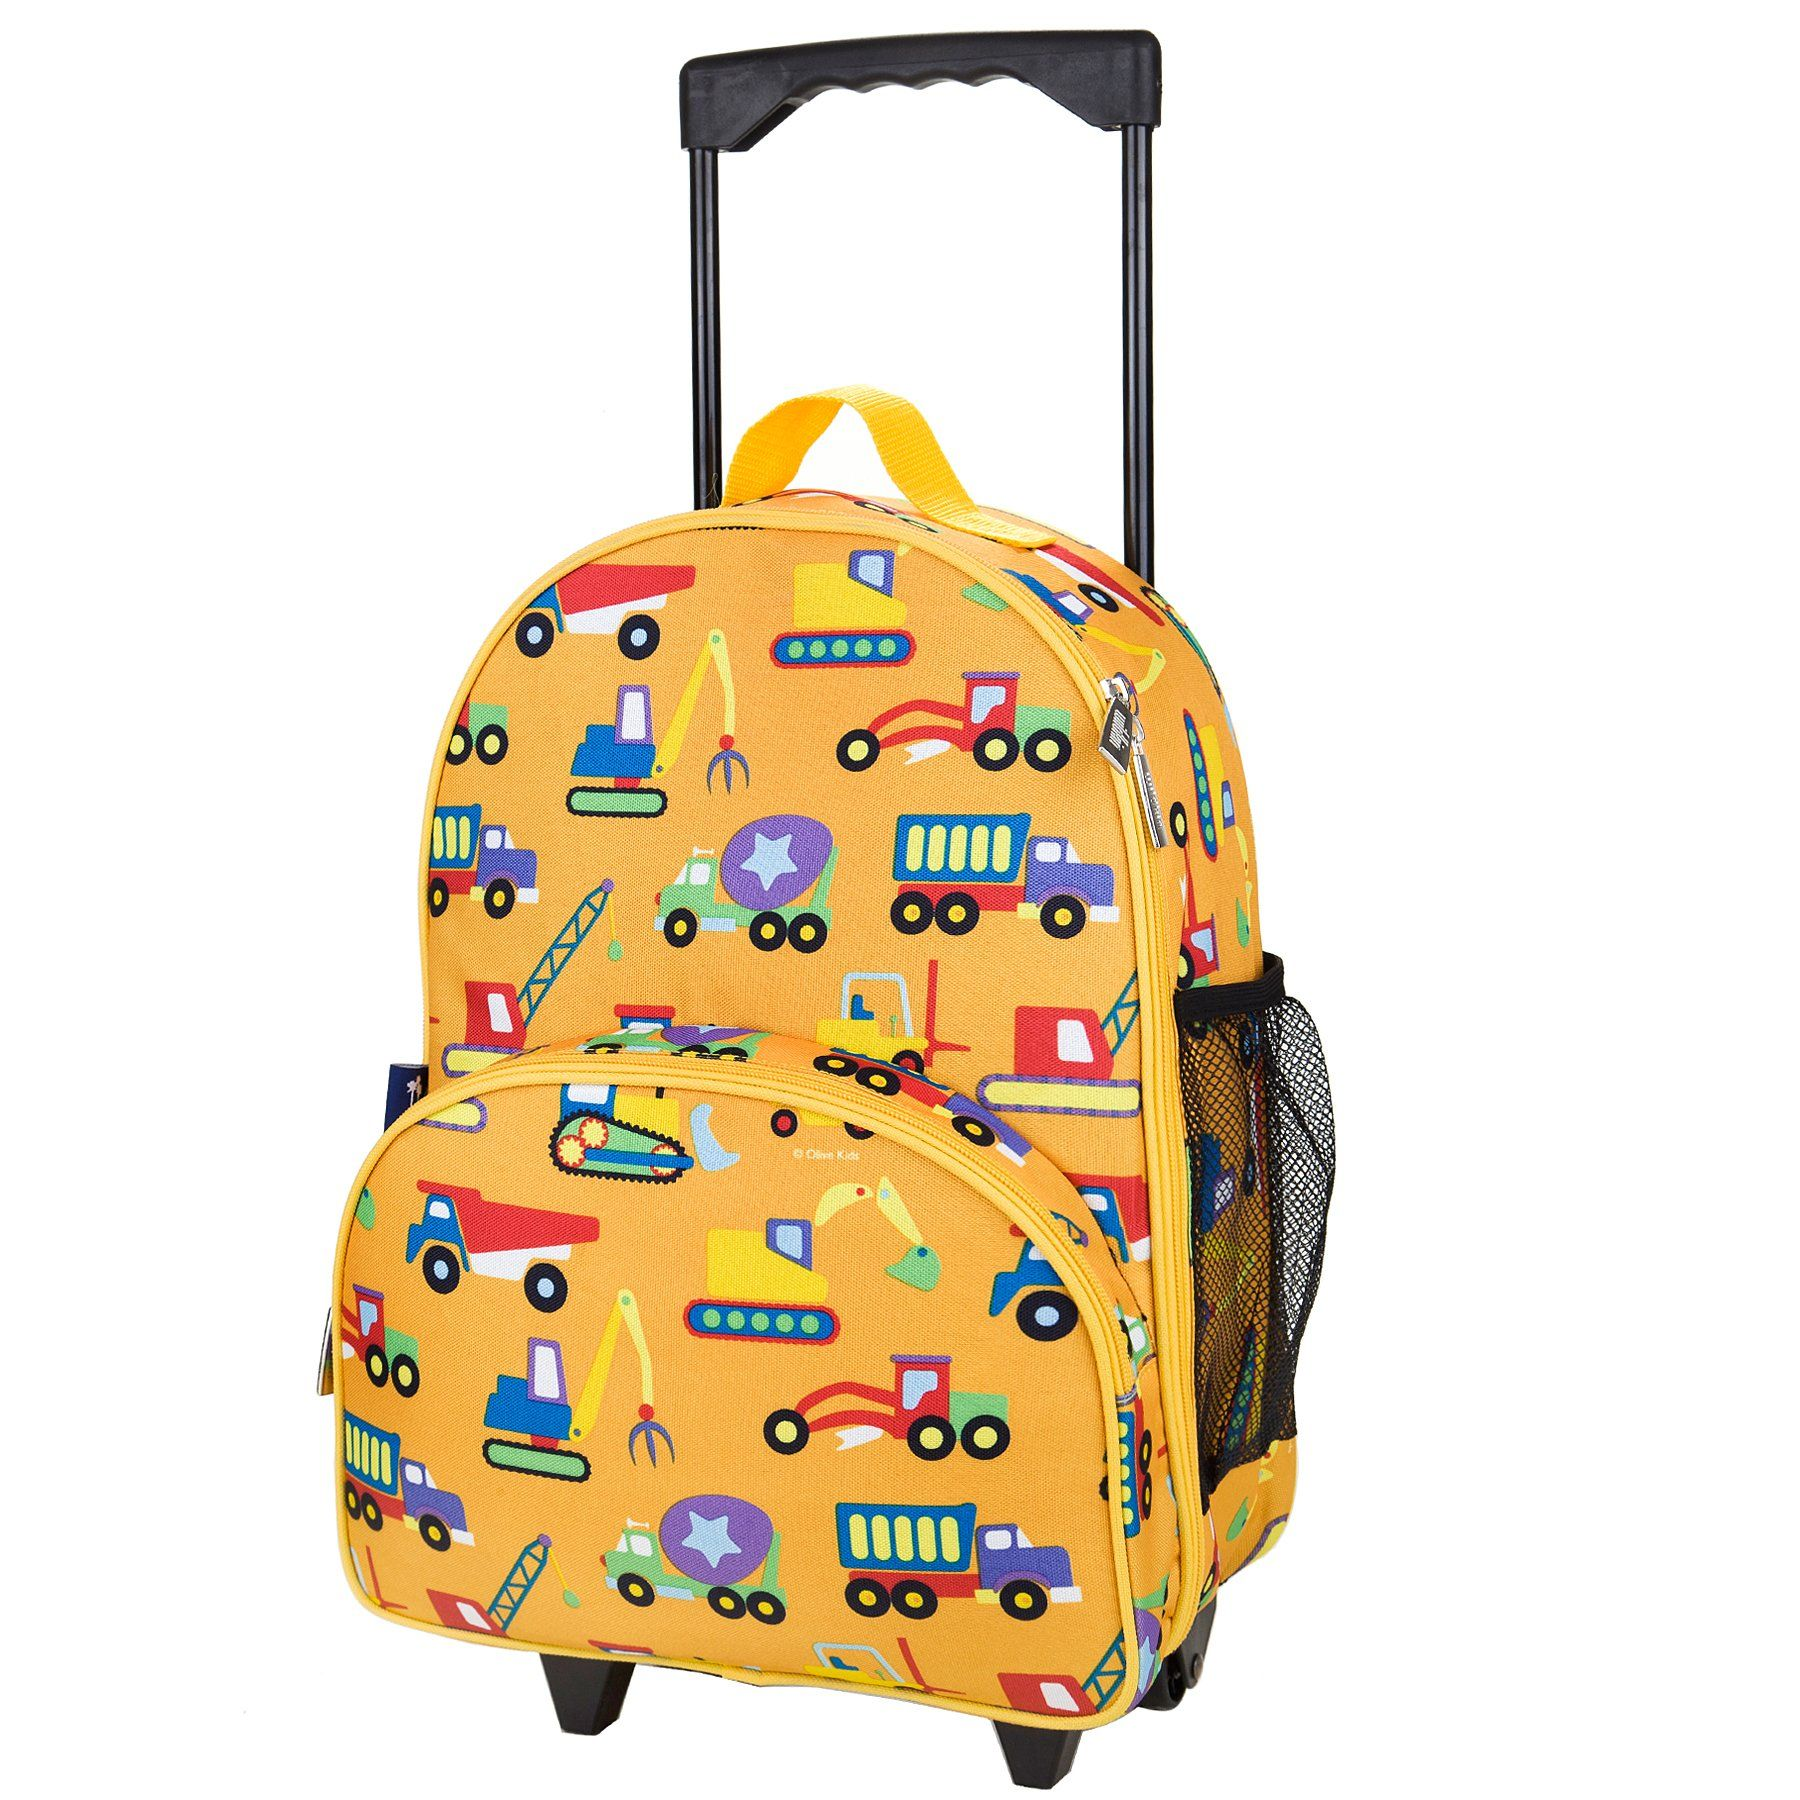 3e889294e2d1 Elmo rolling backpack for toddlers fenix toulouse handball jpg 1800x1800  Elmo backpacks for toddlers